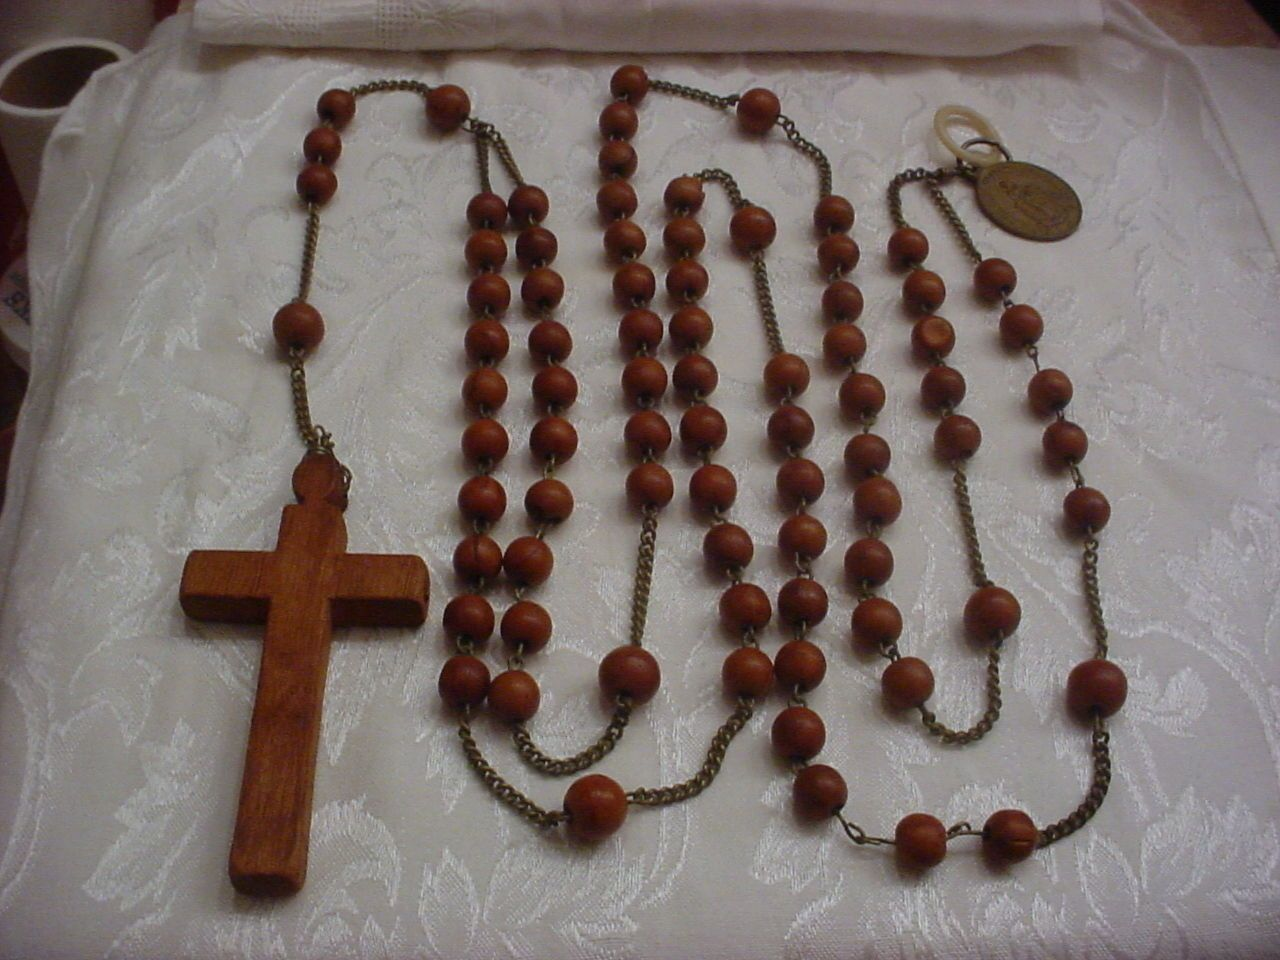 medium resolution of franciscan crown rosary 19 early 20th century rosary beads small rosary beads crown rosary diagram